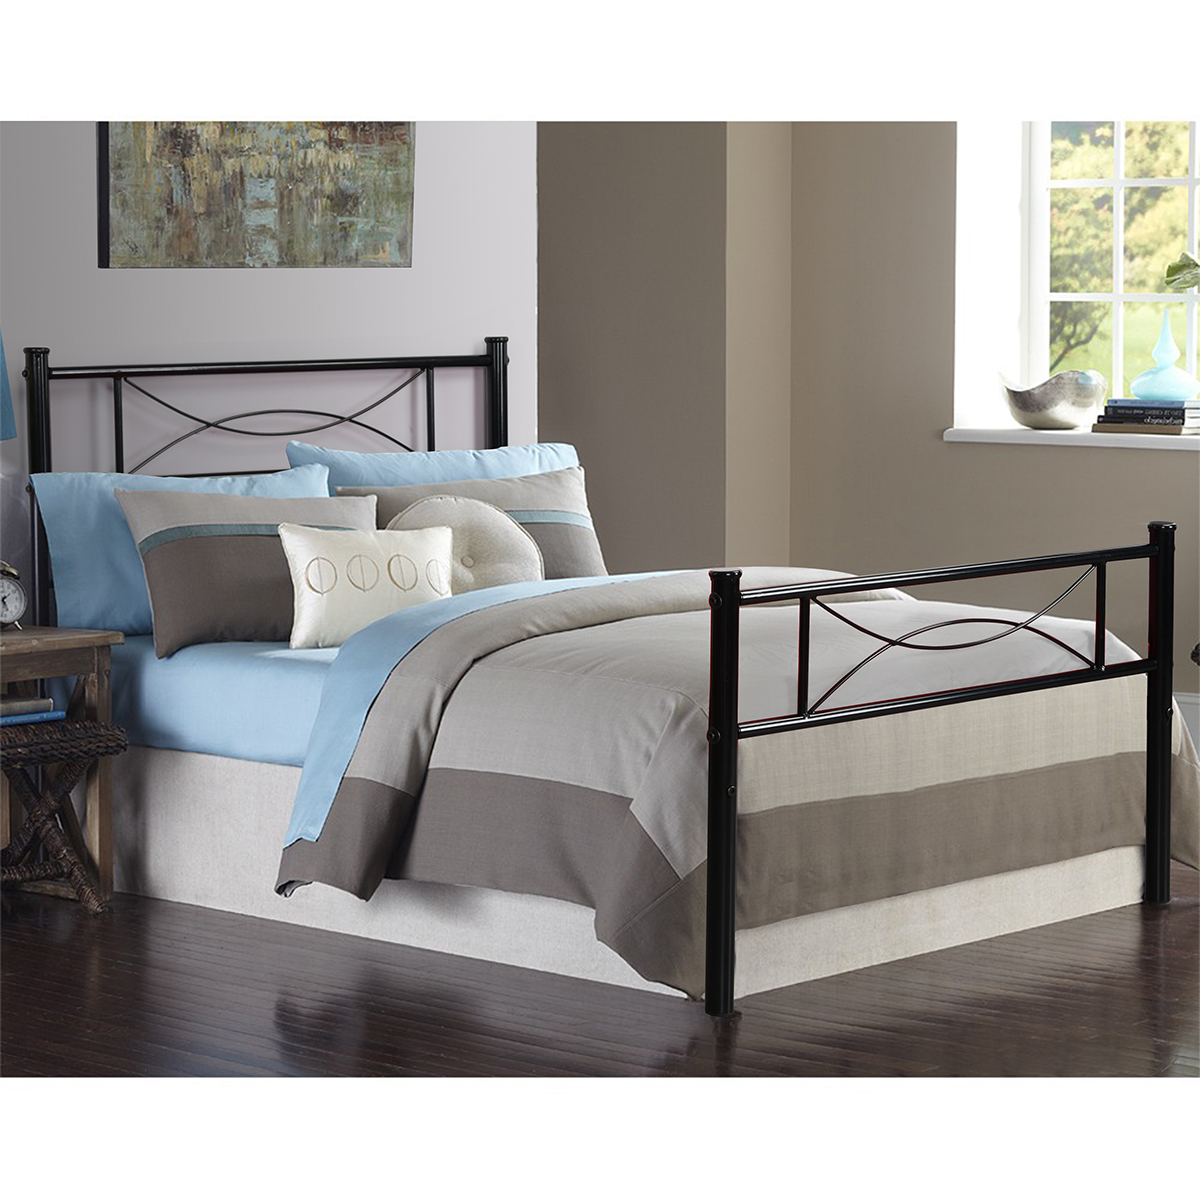 Furniture R Bedroom Metal Bed Frame Platform Base Mattress Foundation Twin and